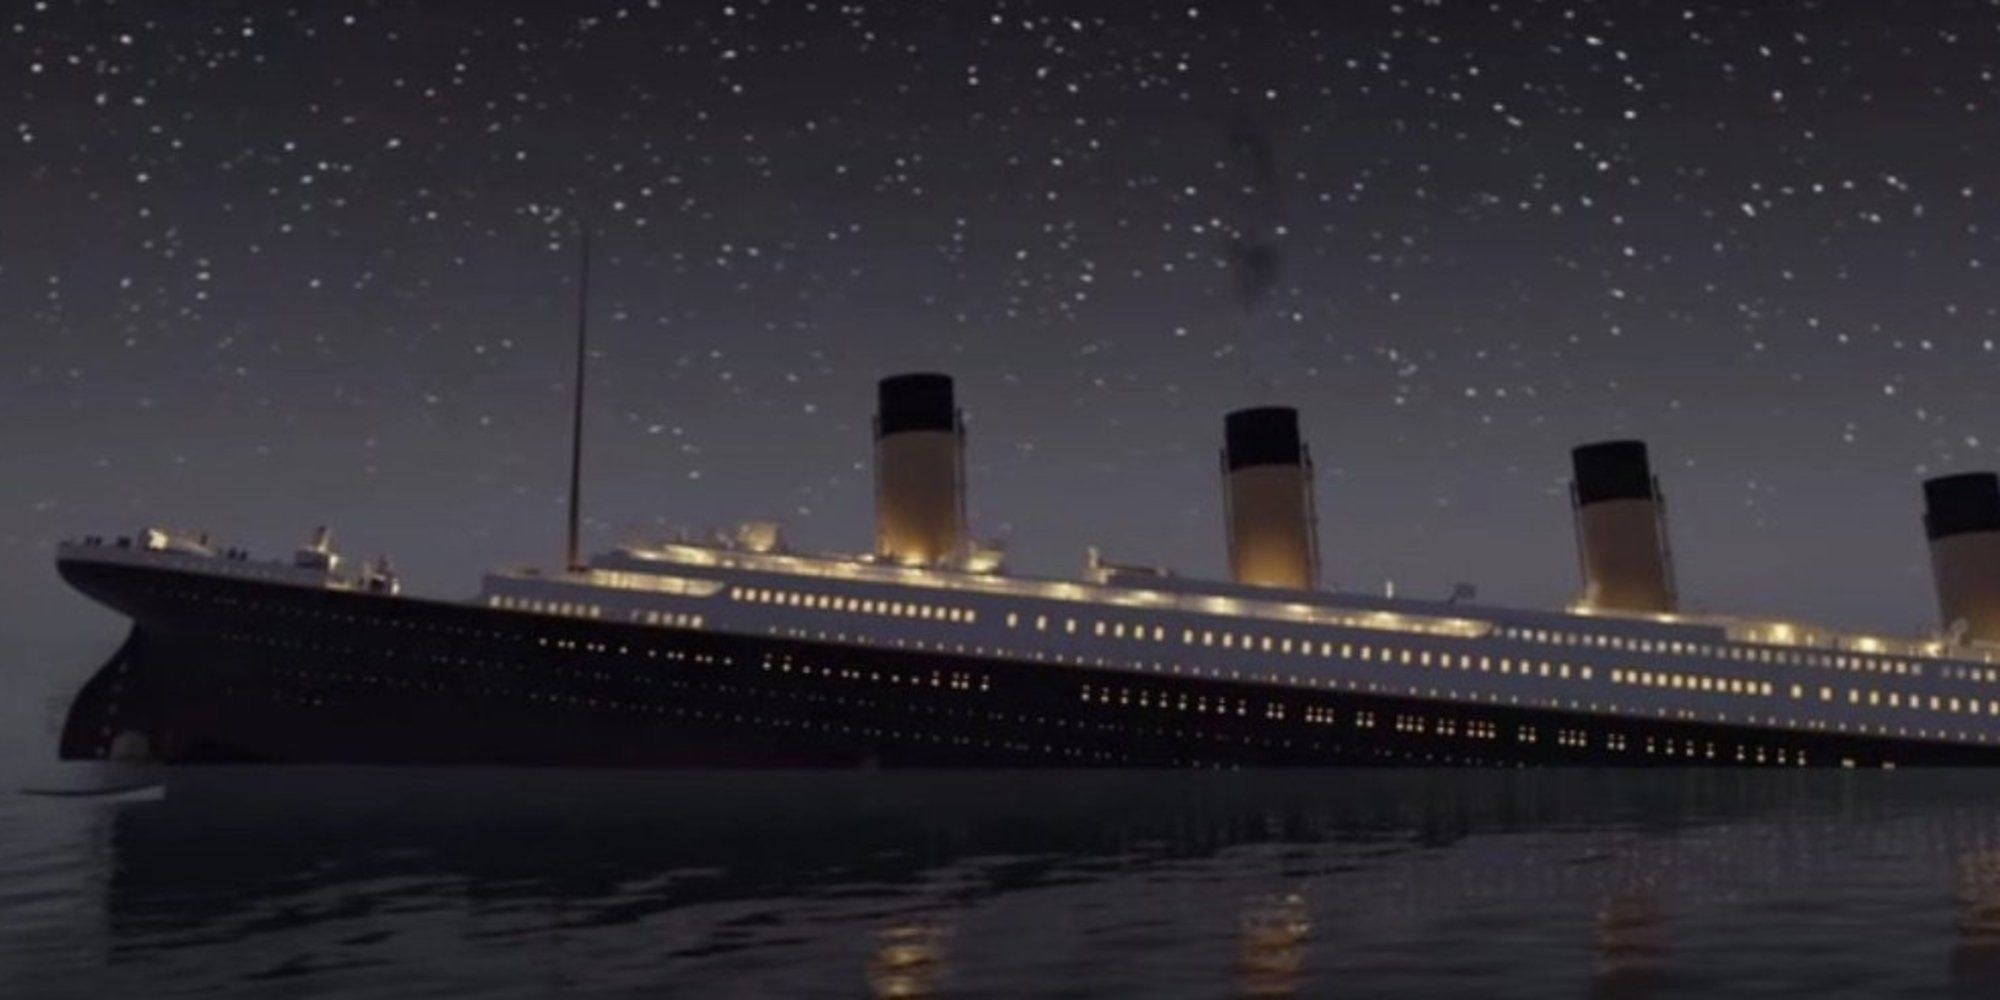 a description of the story of the sinking titanic illustration of the consequences of social inequal The movie starts out in the present day (well, present day in the dark ages of the 1990s) a guy named brock lovett (bill paxton) is heading up a crew of once she's all aboard, she settles in and tells them the story of her trip on the titanic while a lot of her fellow passengers on that ship were pretty.